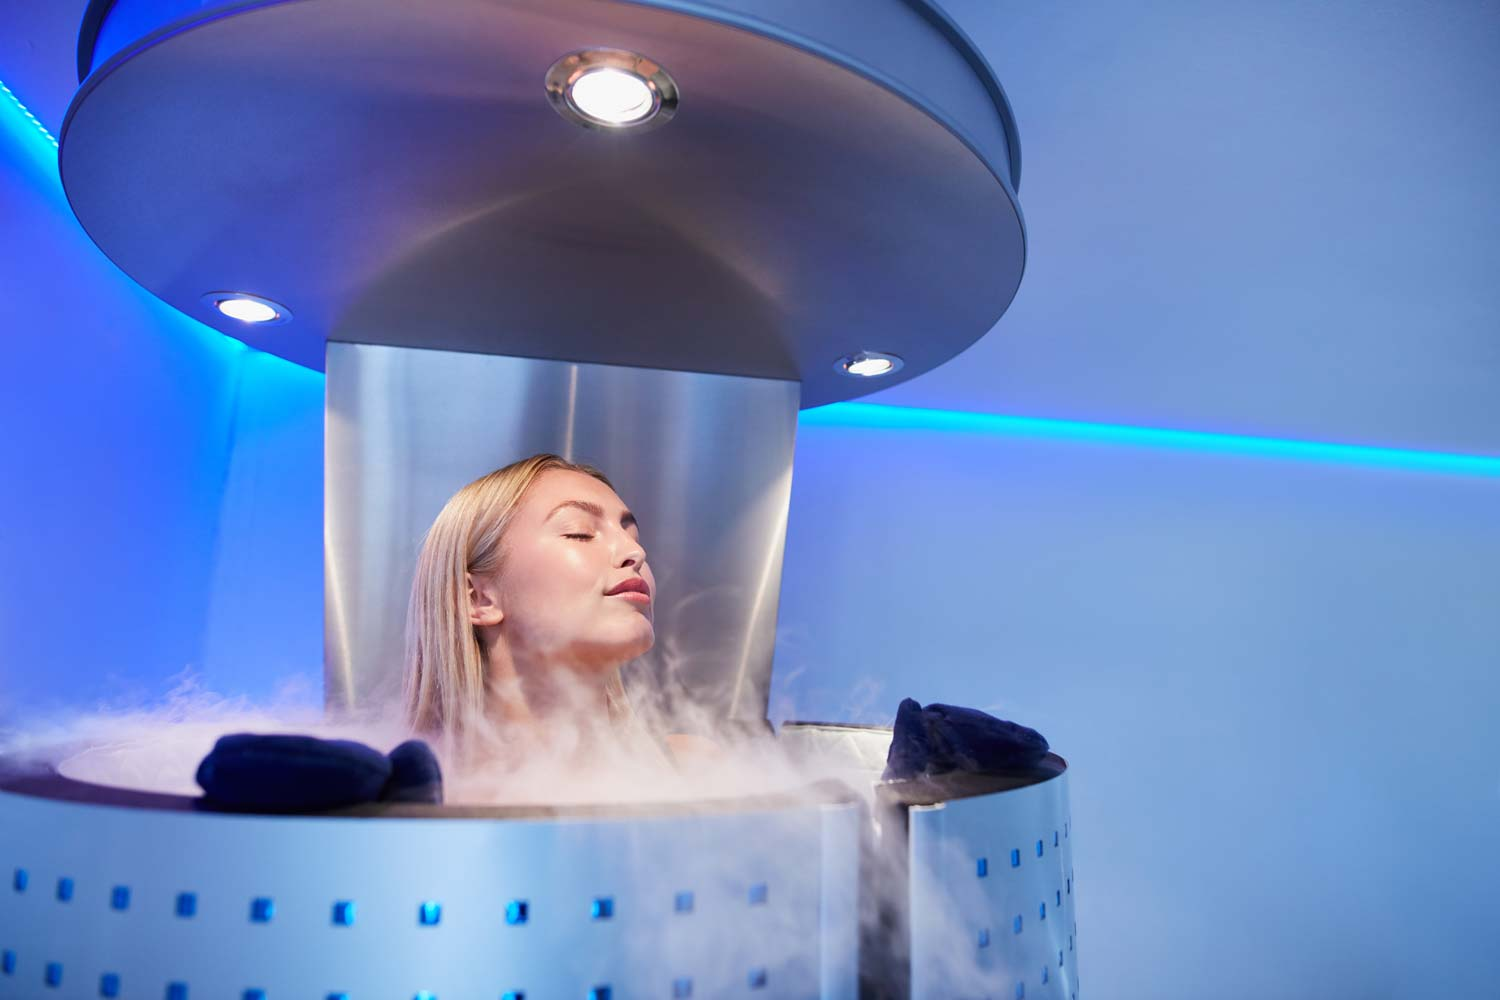 Cryotherapy Services